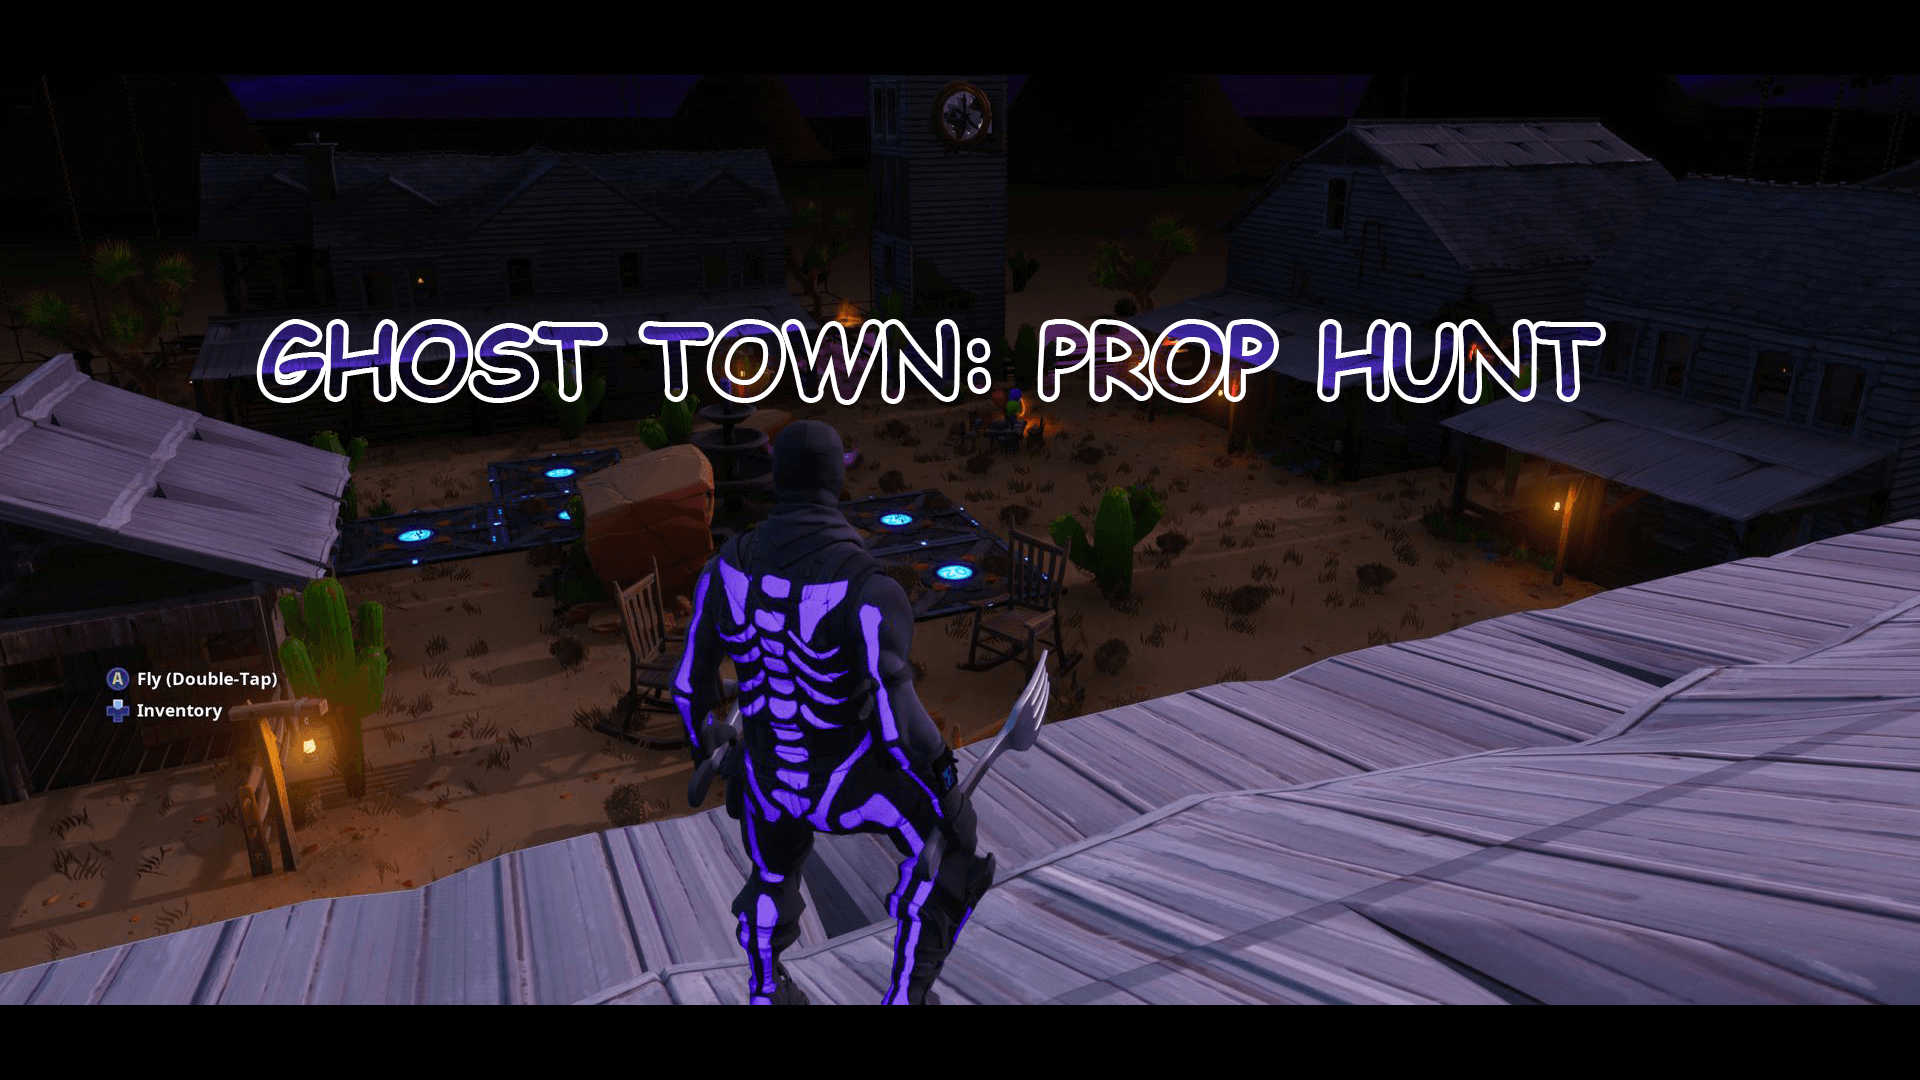 GHOST TOWN: PROP HUNT